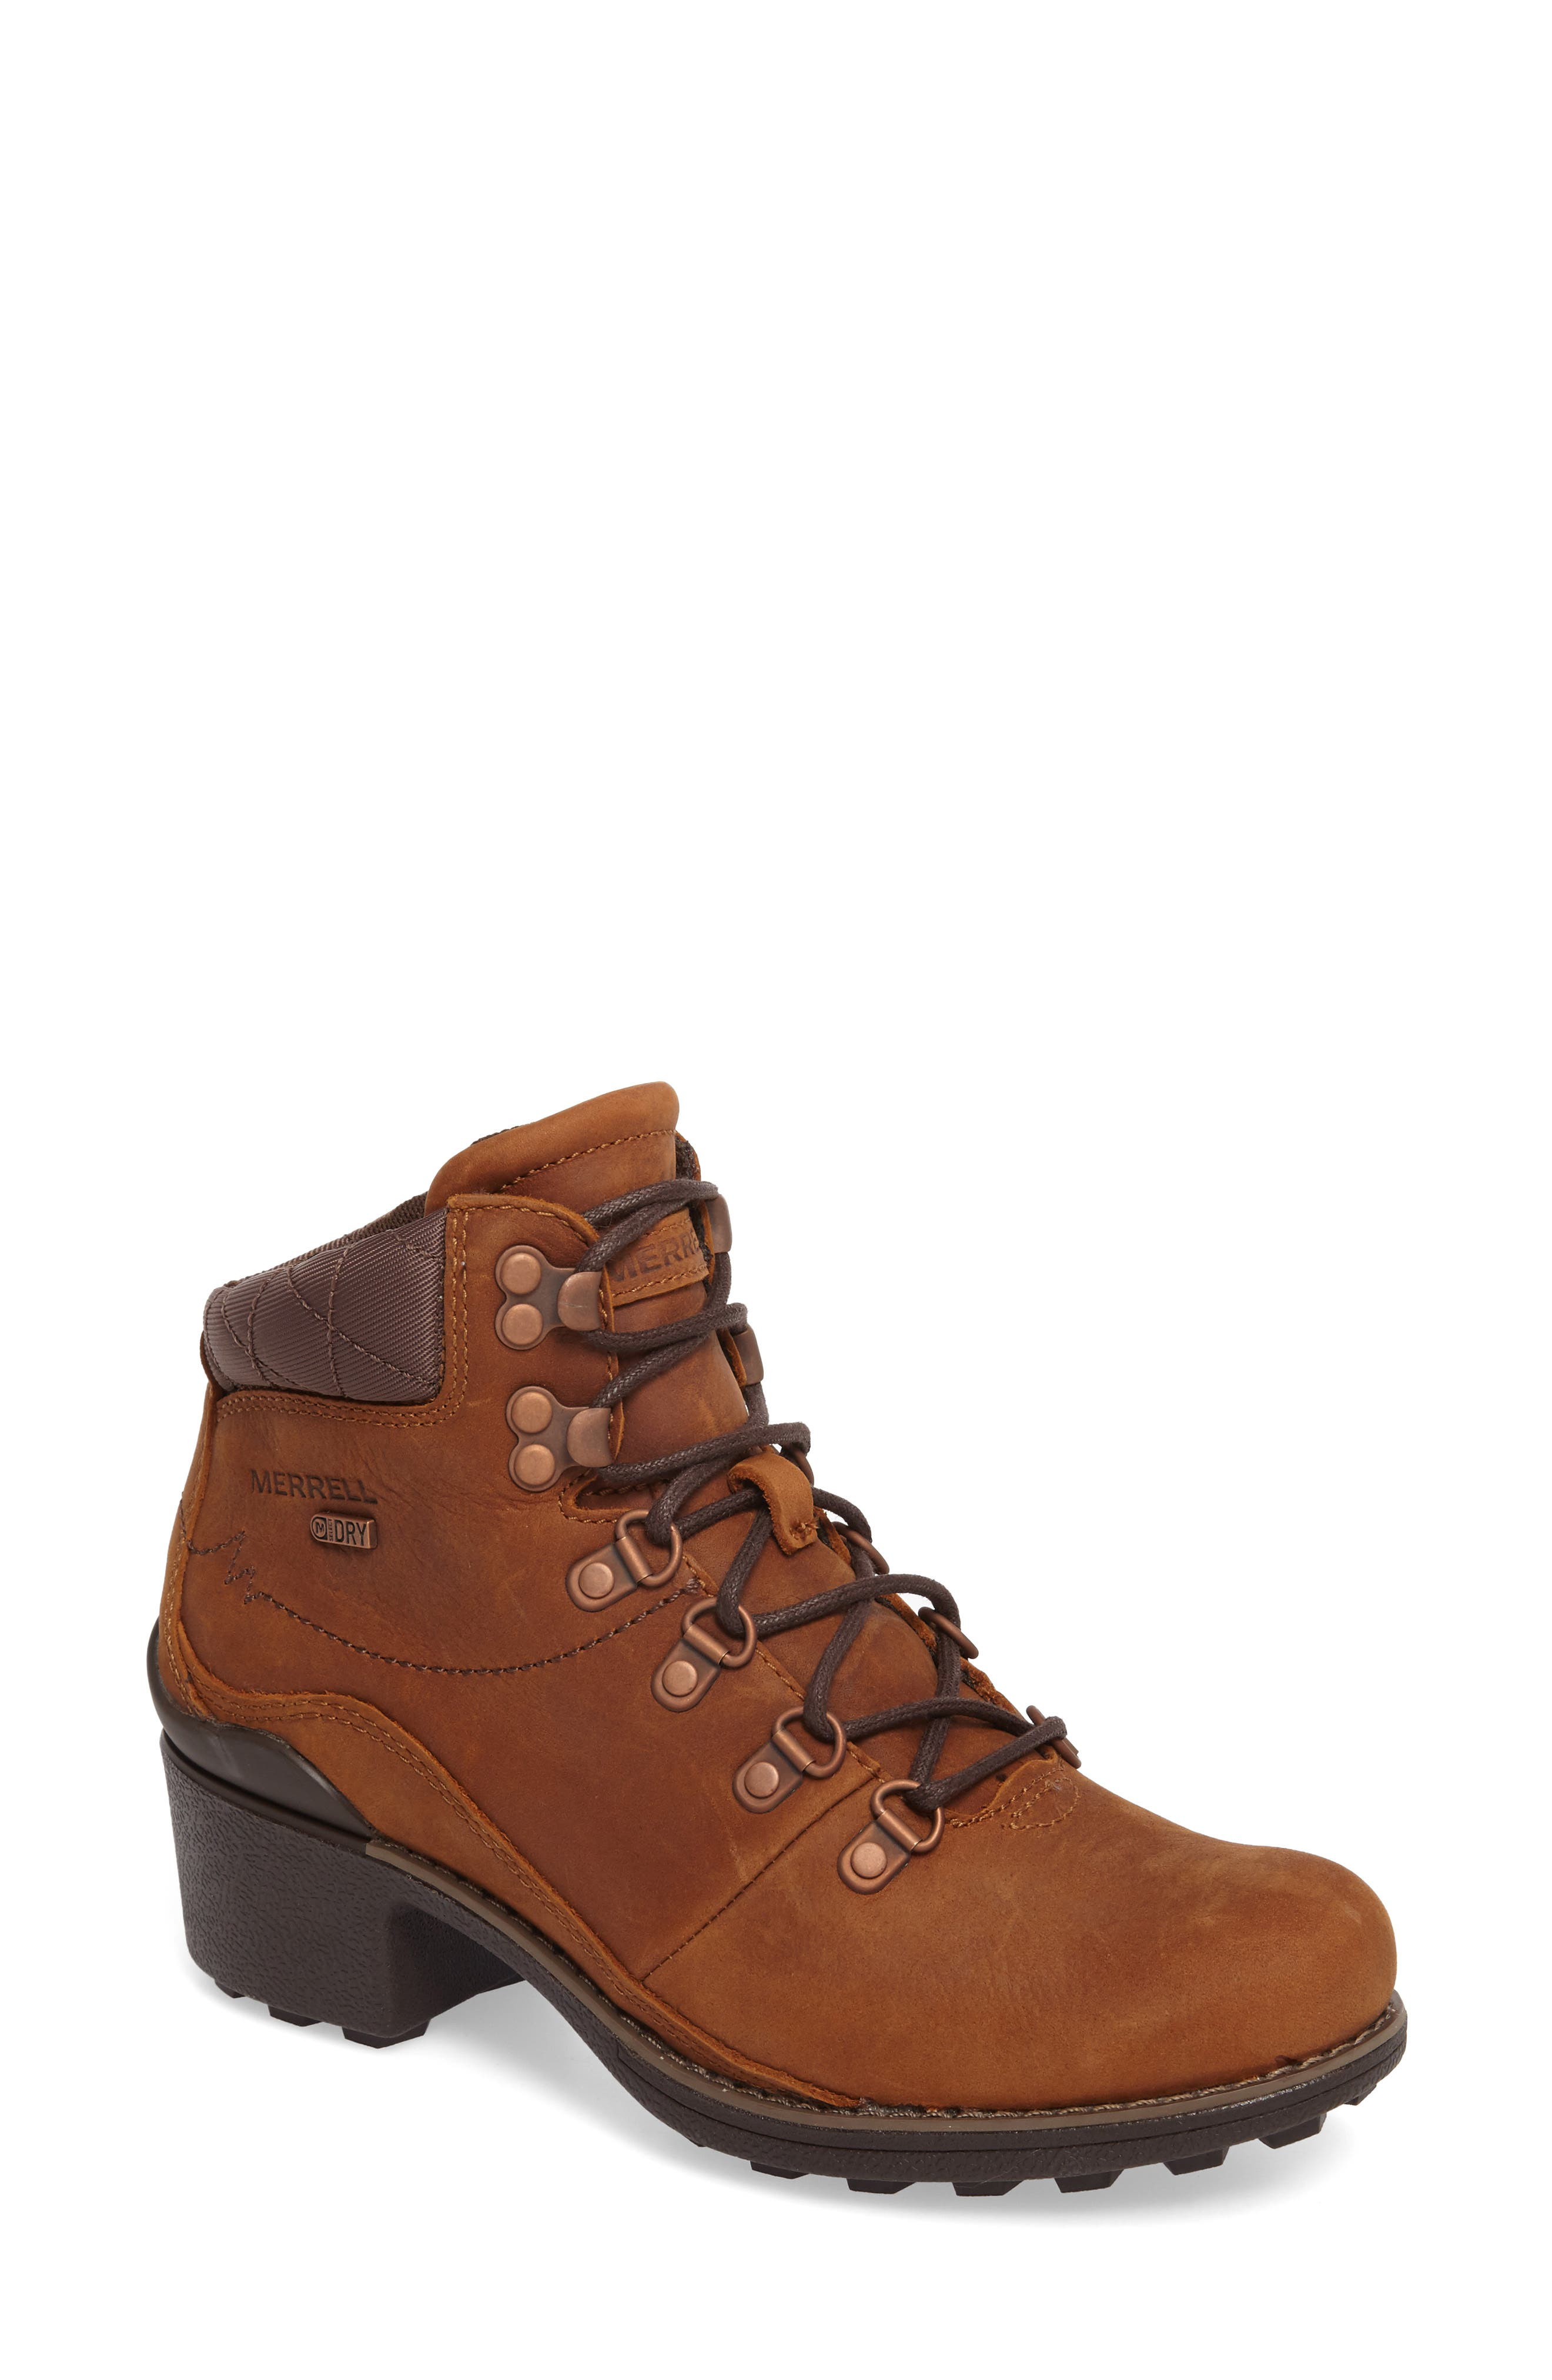 Merrell Chateau Mid Lace Waterproof Bootie, Brown